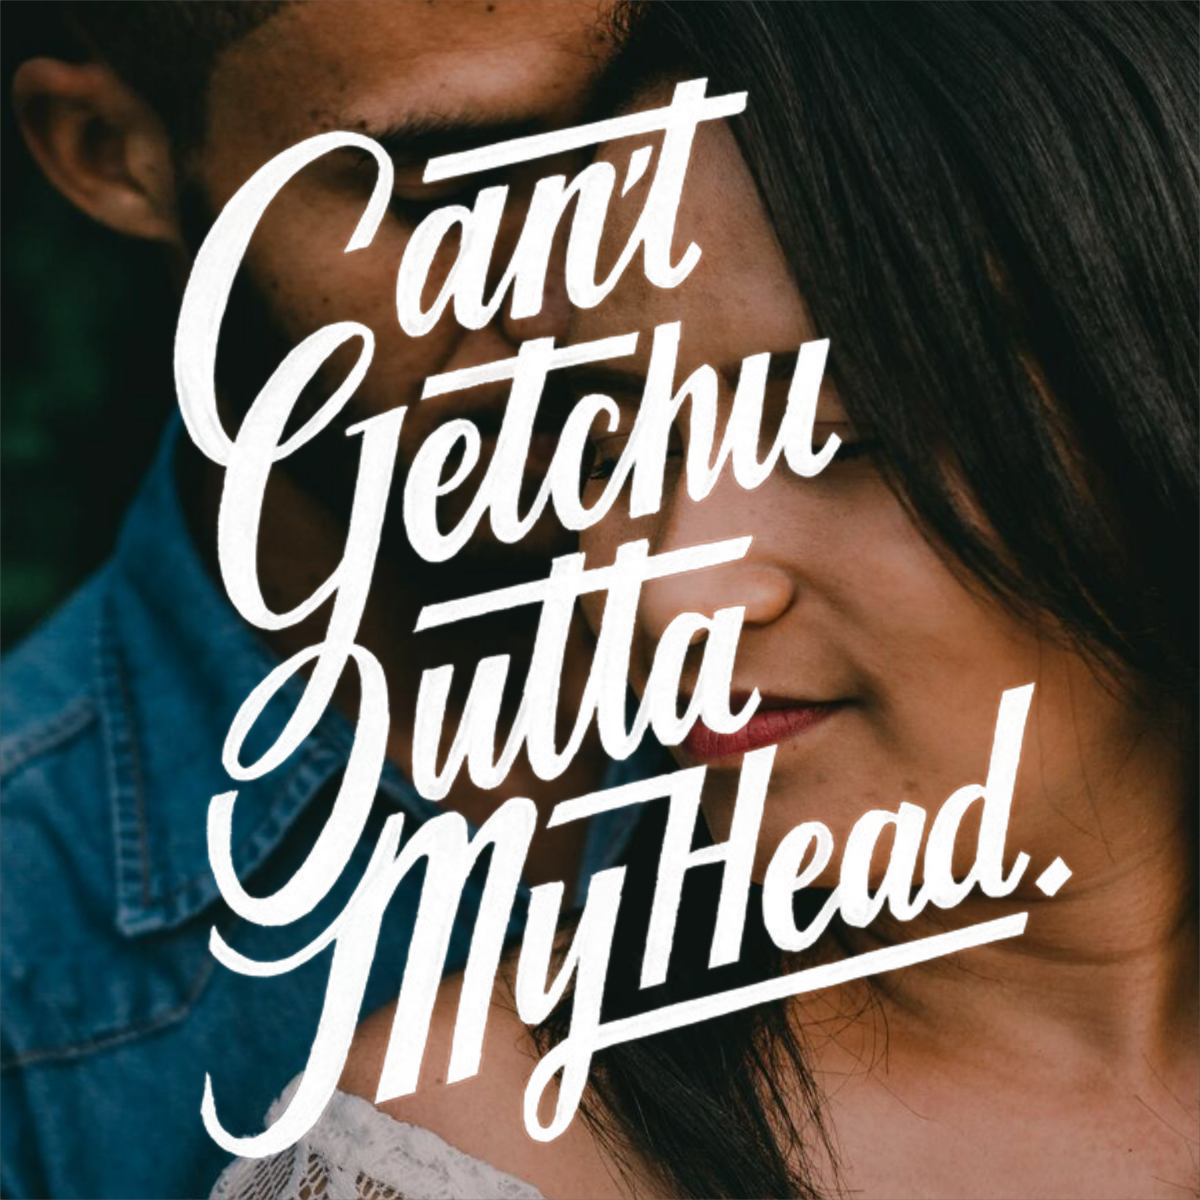 Can't Get You Outta My Head (Photo) - White - Paperless Post - Valentine's Day